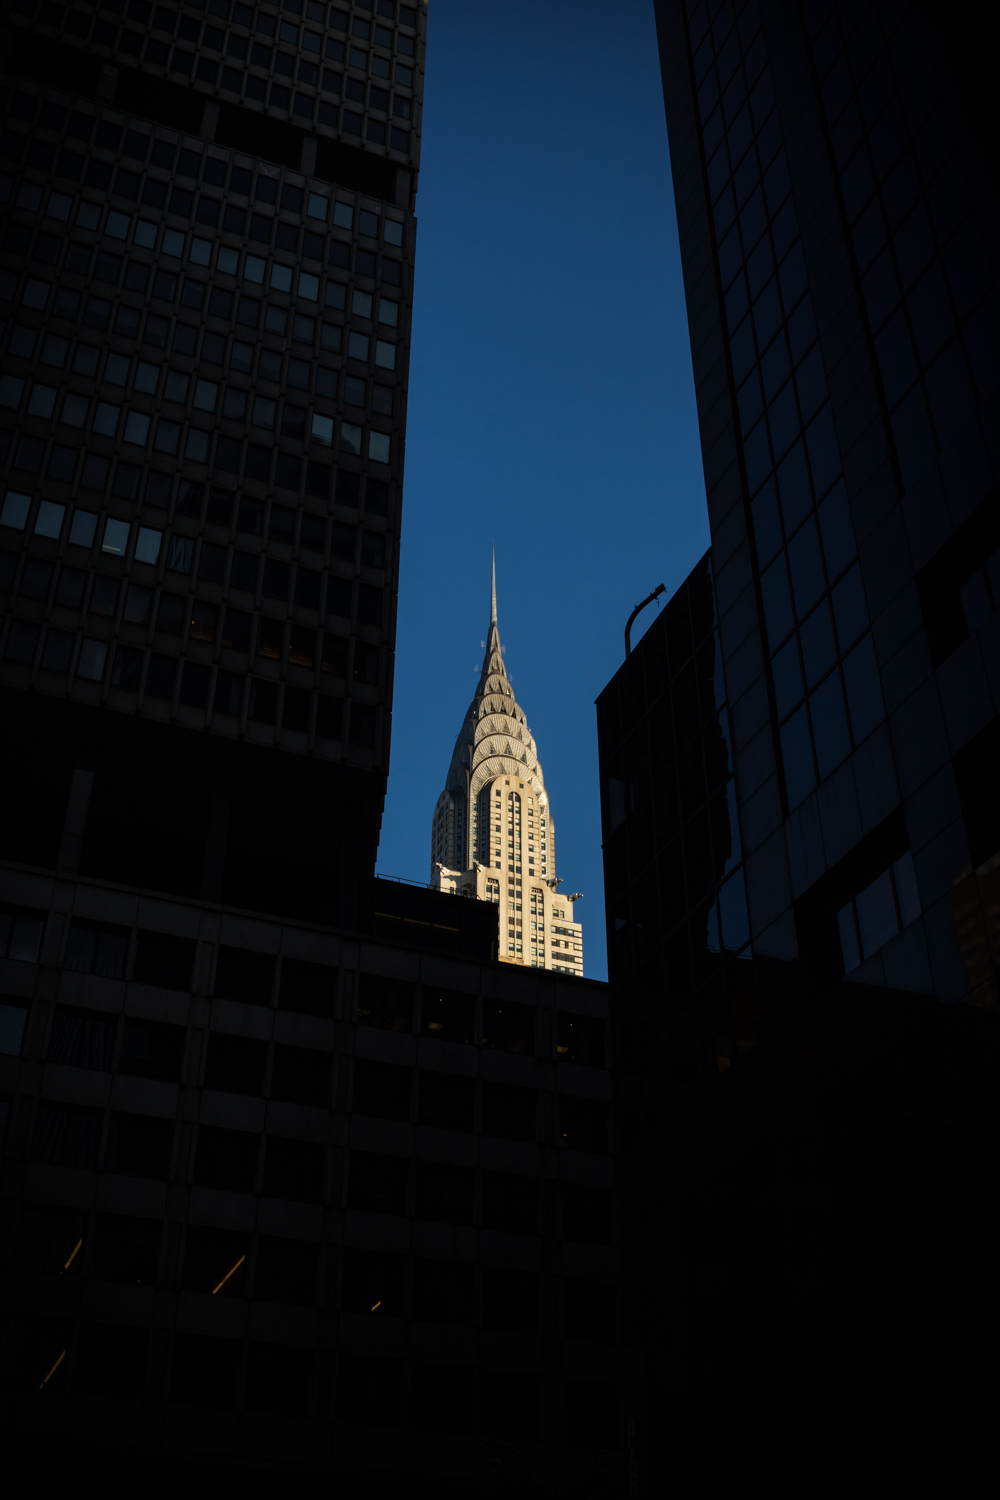 chrysler building_2018.jpg